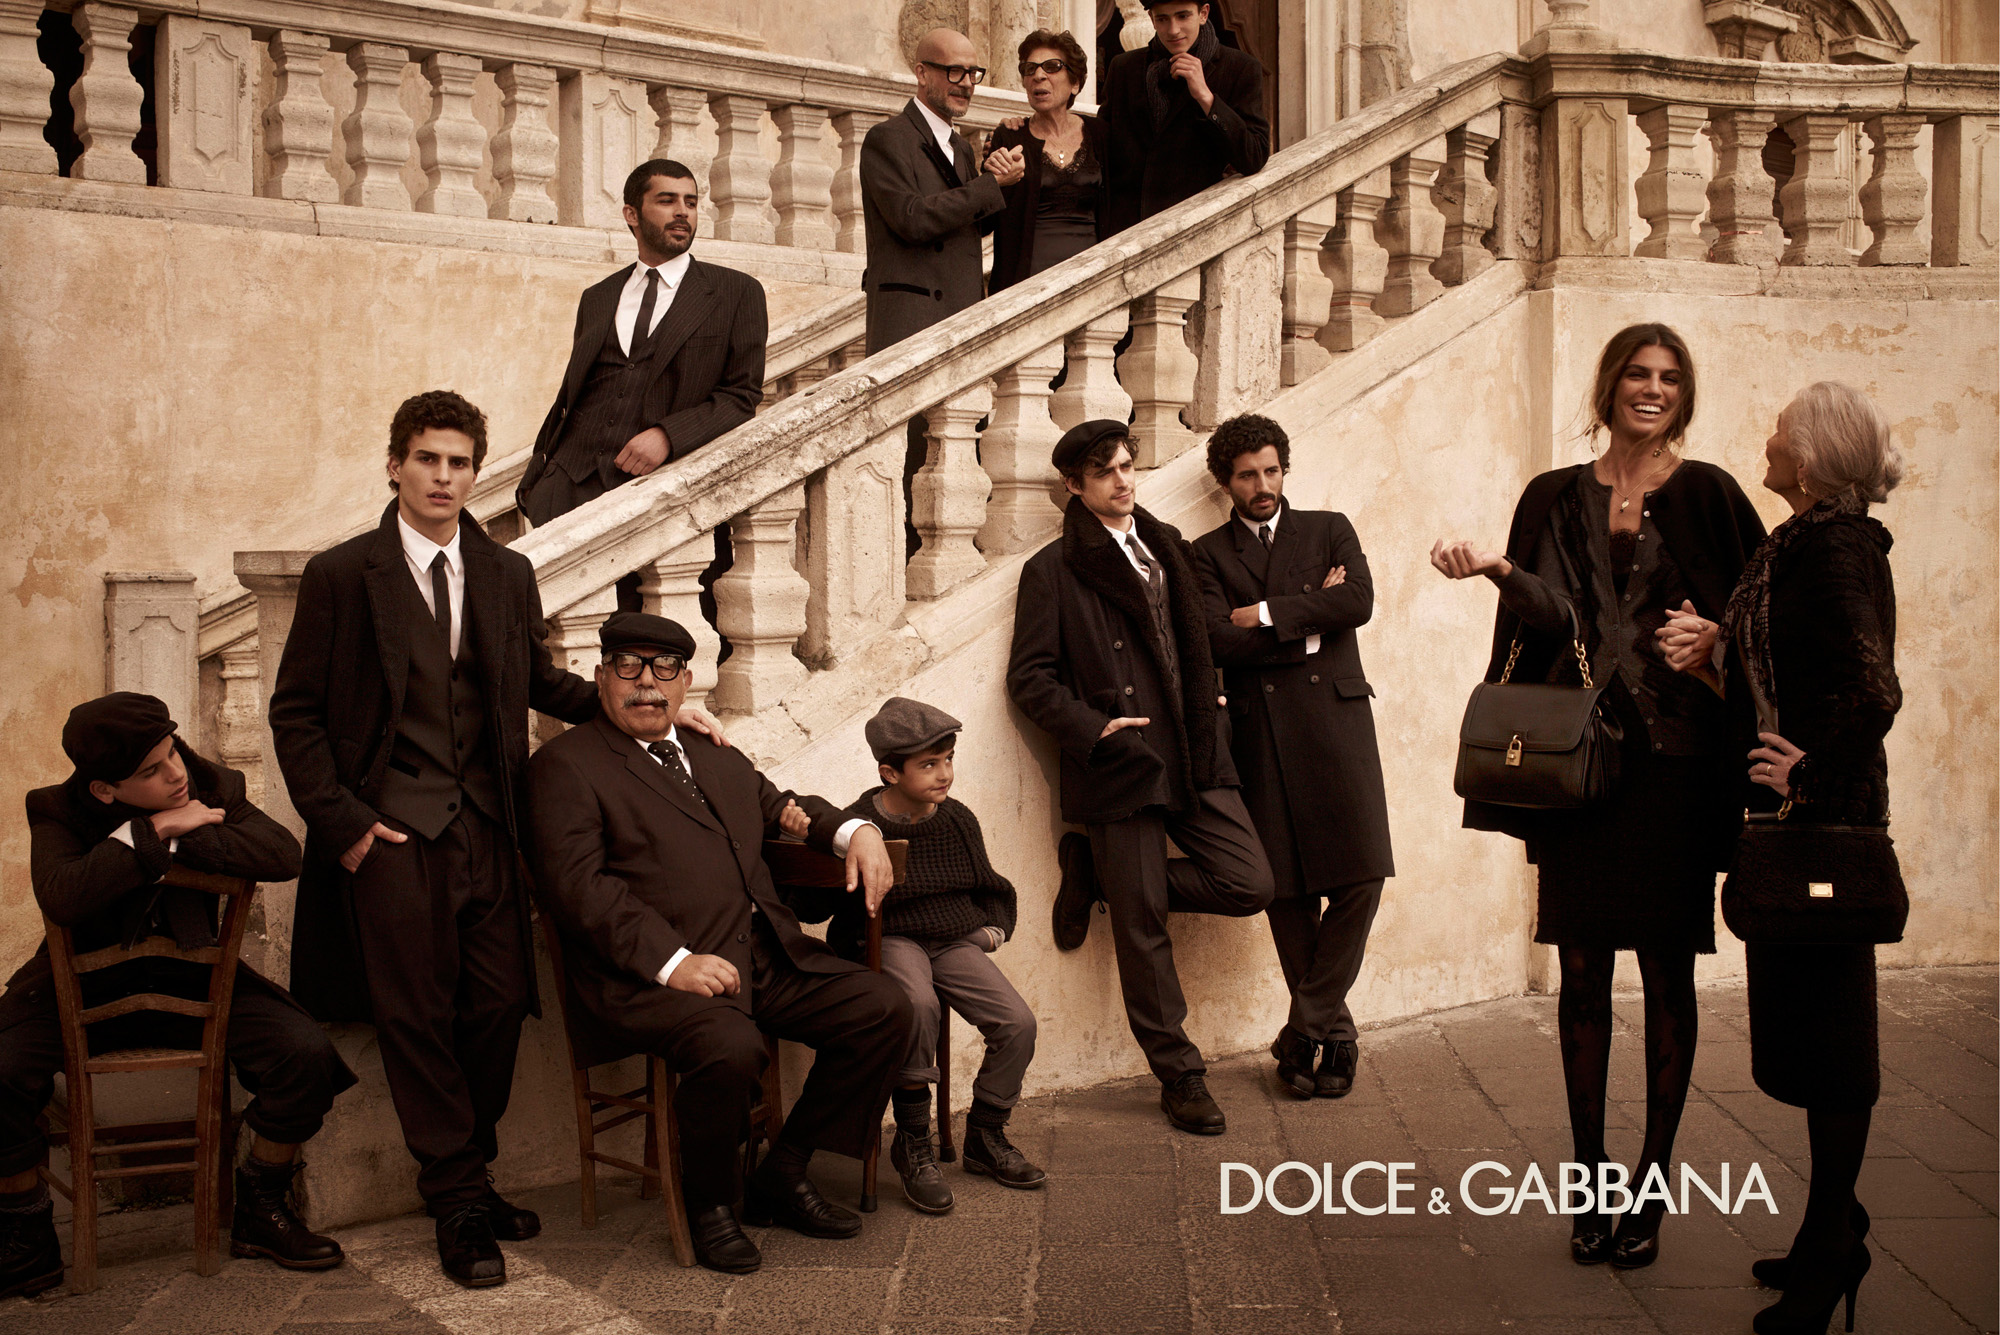 dolce gabbana fall 2012 winter 2013 ad campaign atelier christine. Black Bedroom Furniture Sets. Home Design Ideas